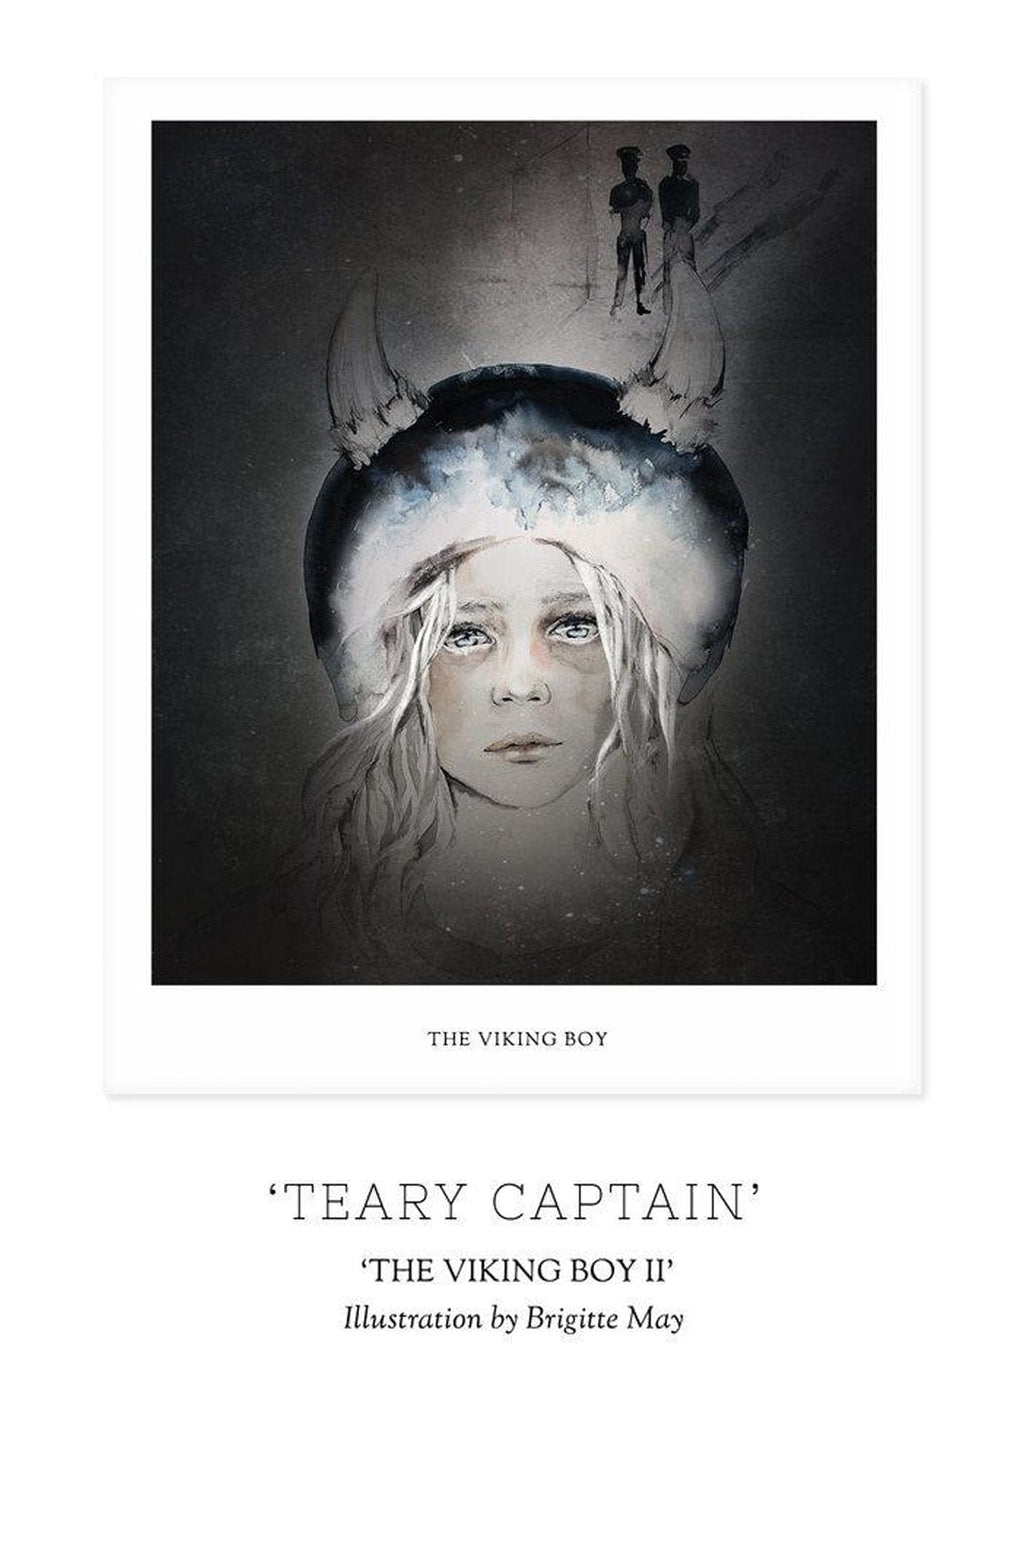 Unclebearskin Productions, THE VIKING BOY, CHAPTER II - 'TEARY CAPTAIN' Print - Hello Little Birdie